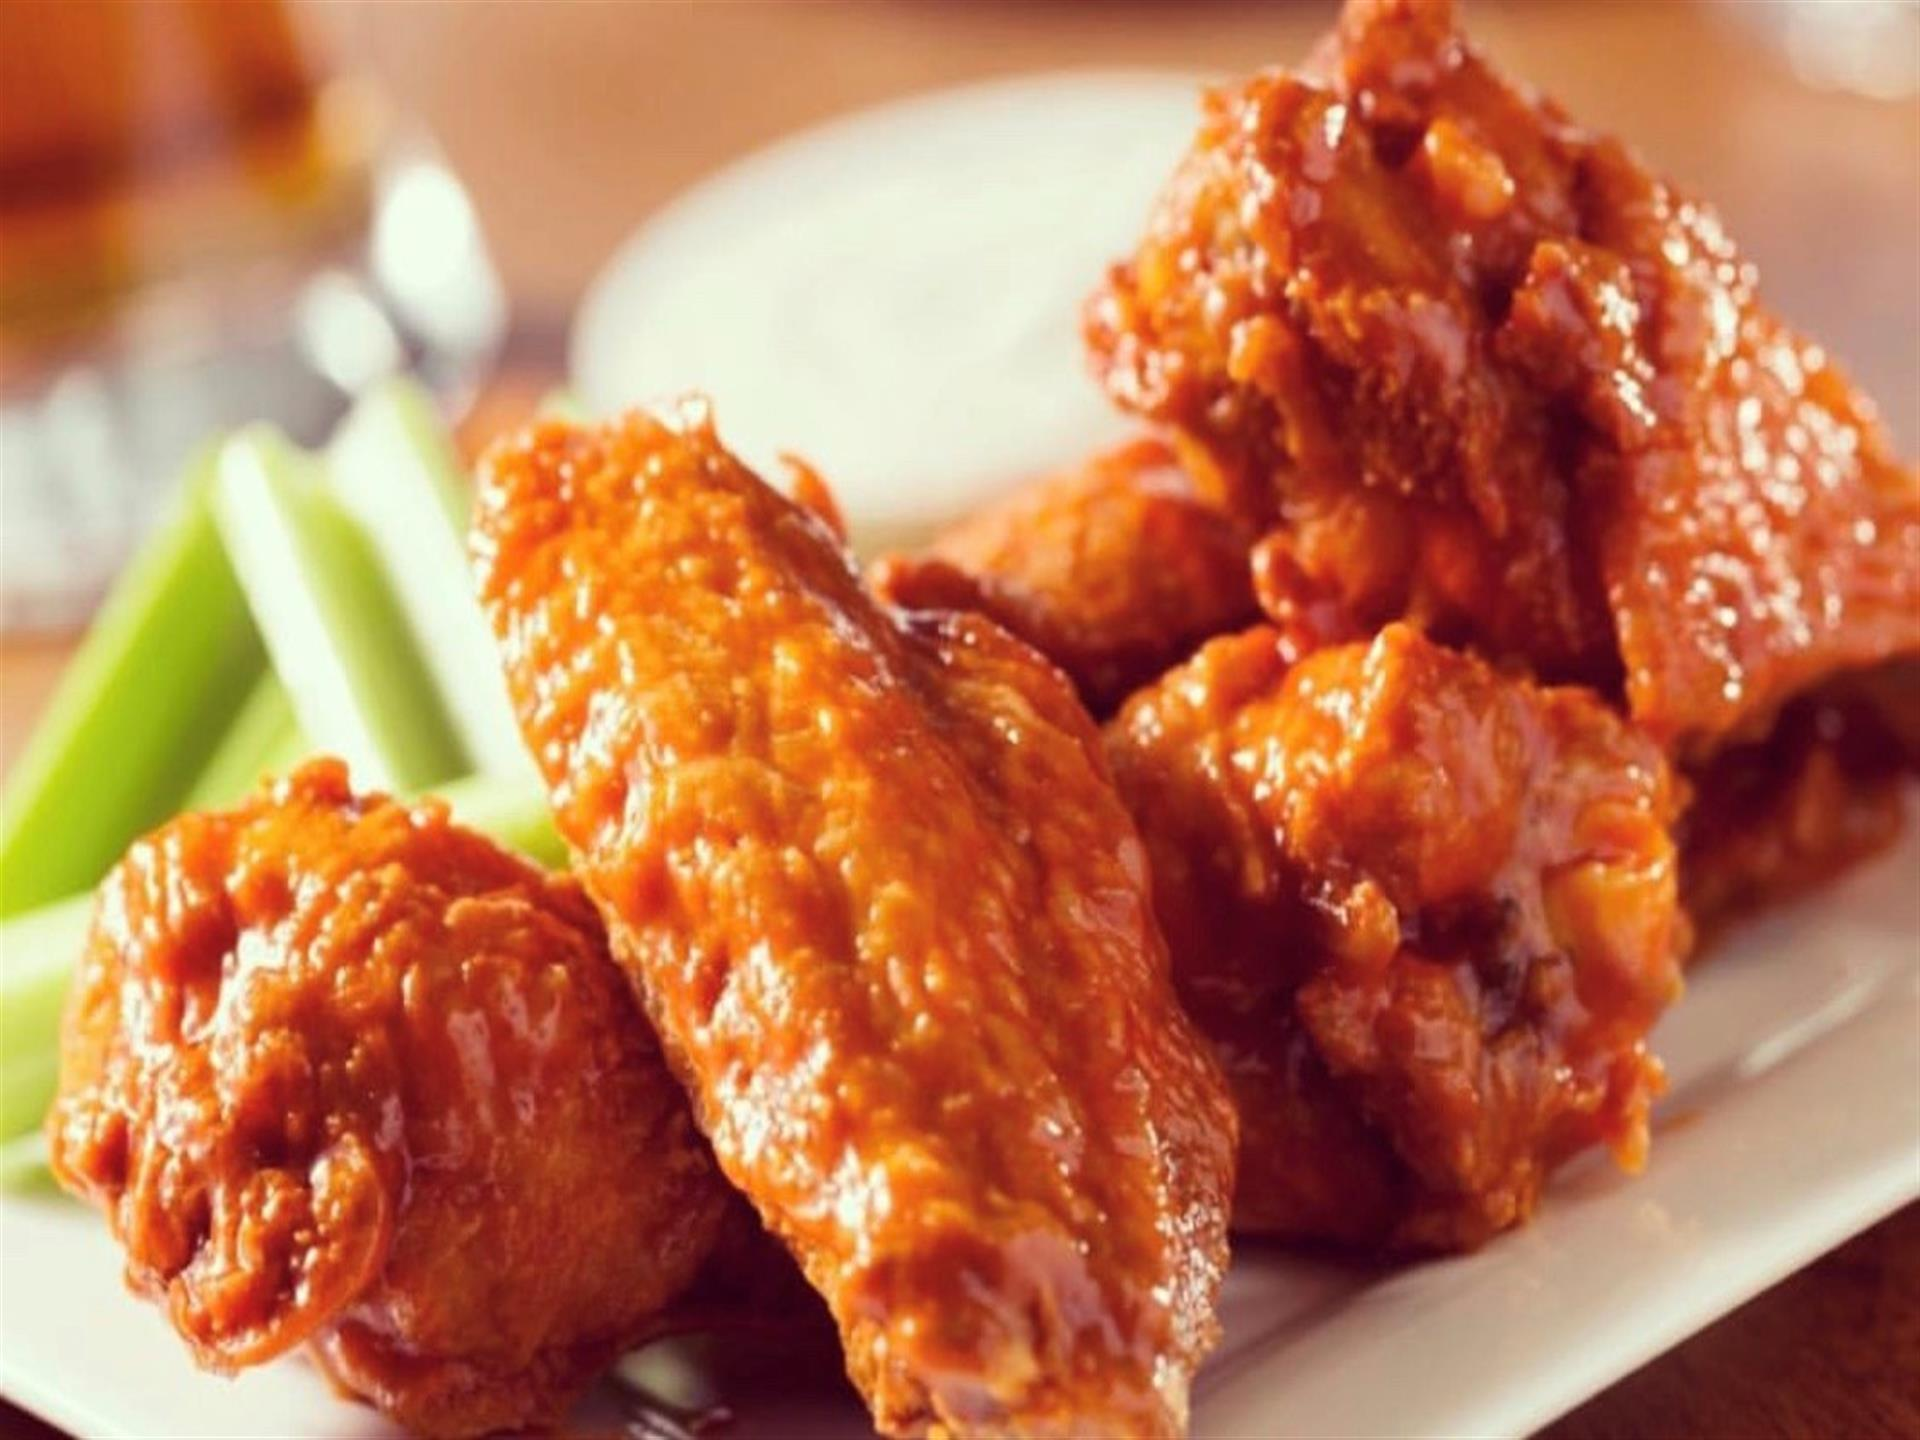 Buffalo Wings with celery and blue cheese